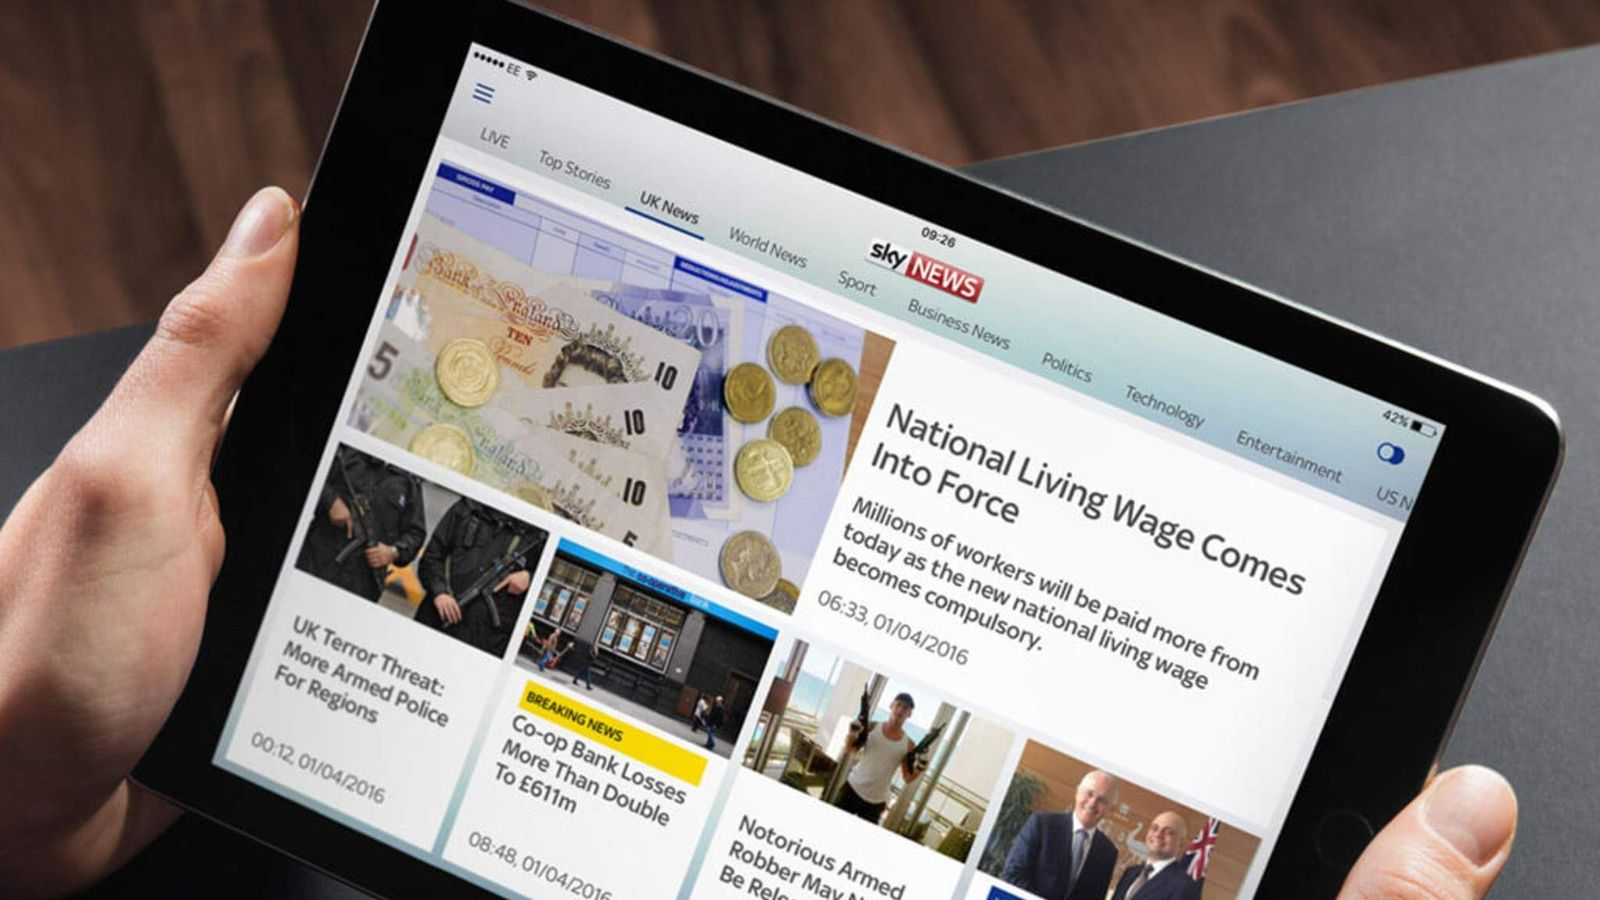 follow the latest breaking news wherever you are on iphone ipad